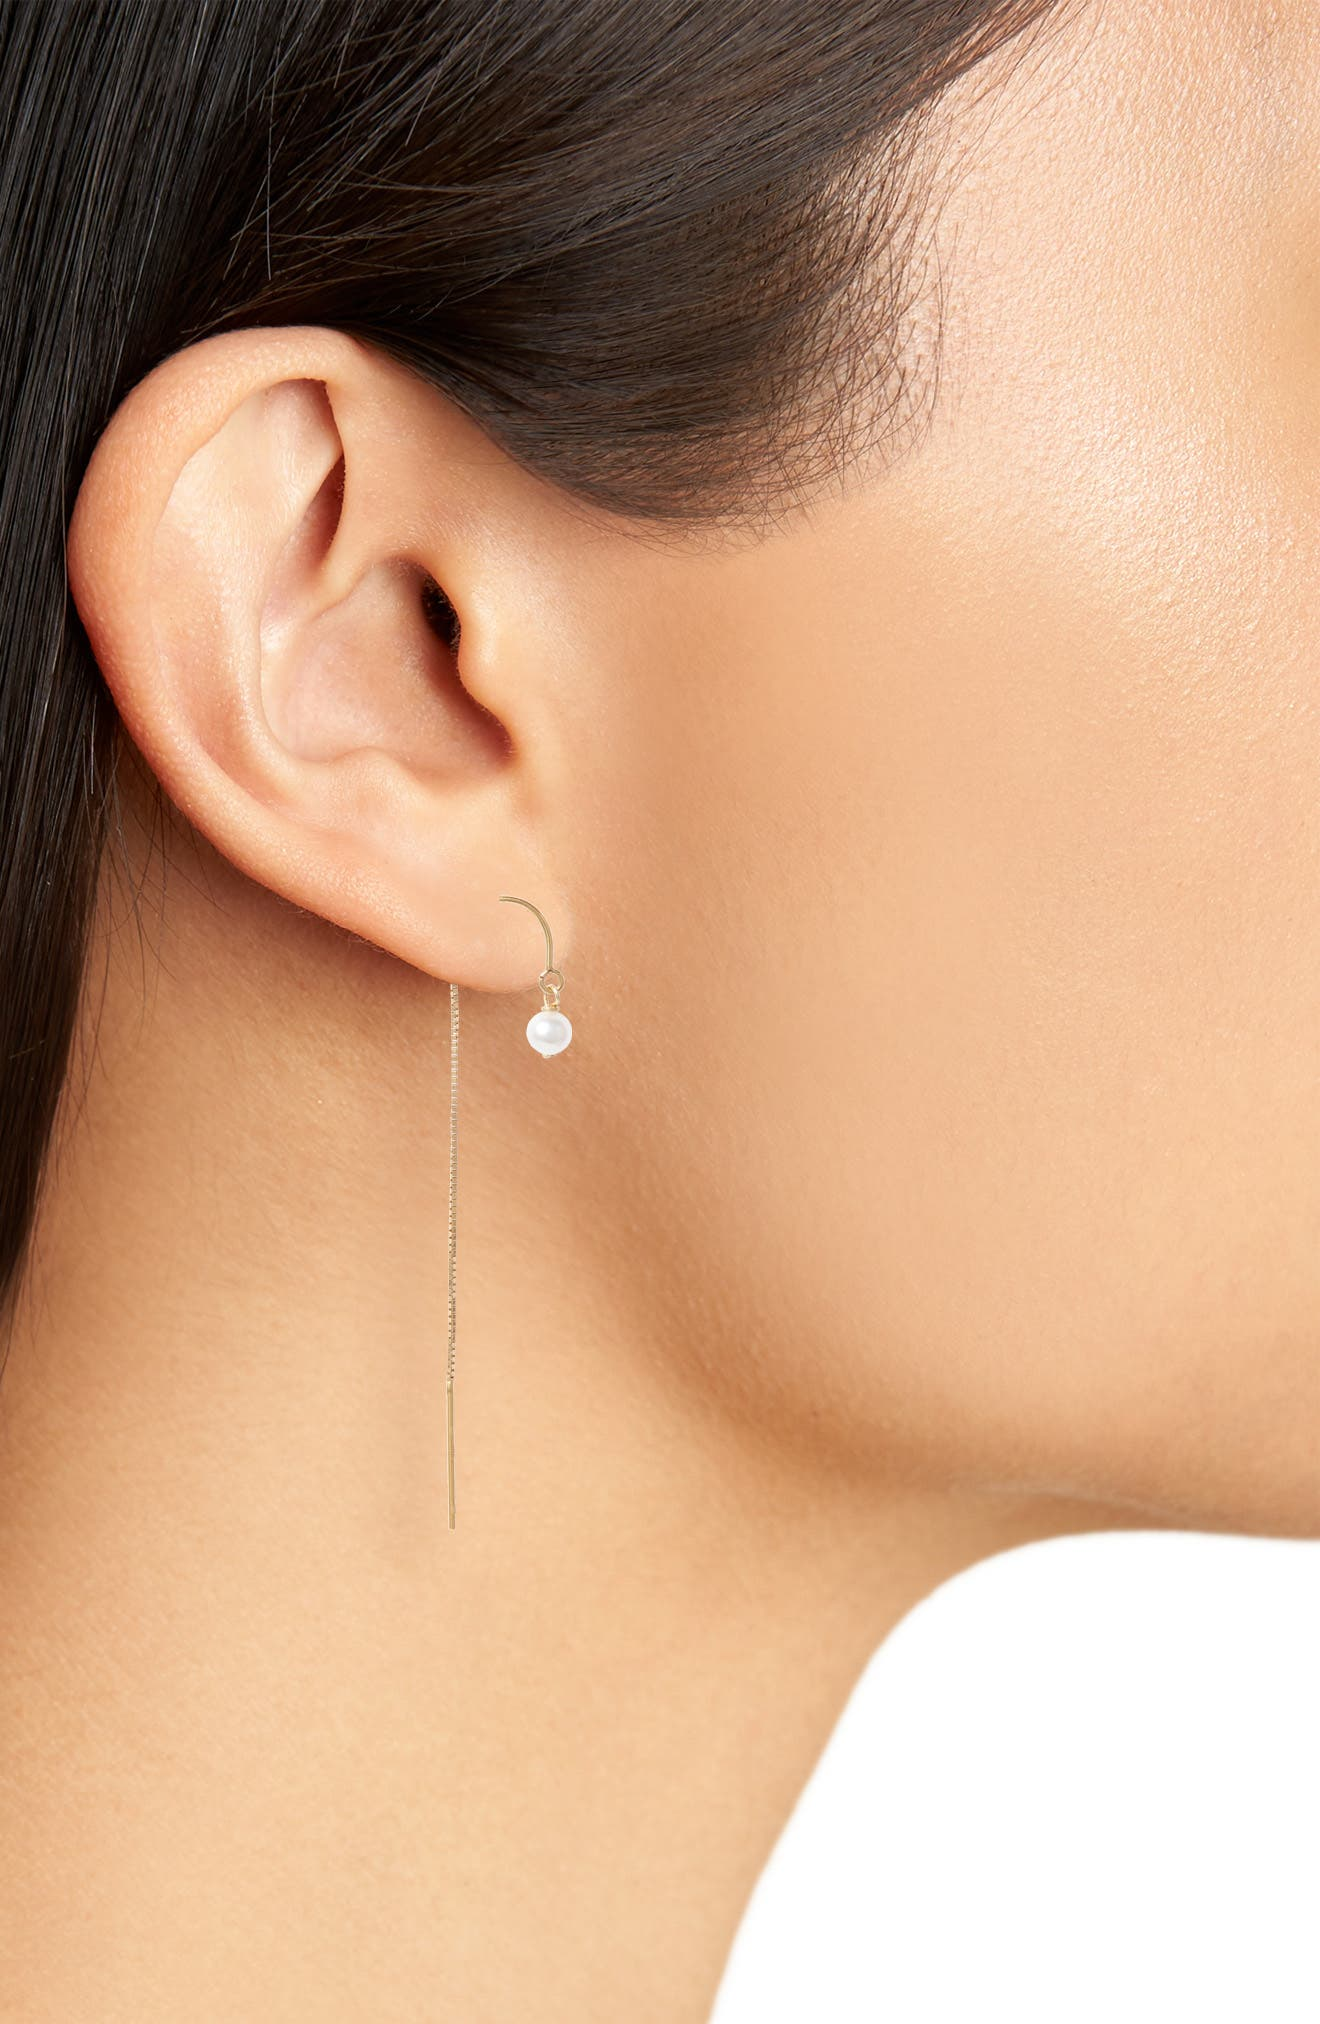 Tiny Pearl Threader Earrings,                             Alternate thumbnail 2, color,                             Yellow Gold/ White Pearl